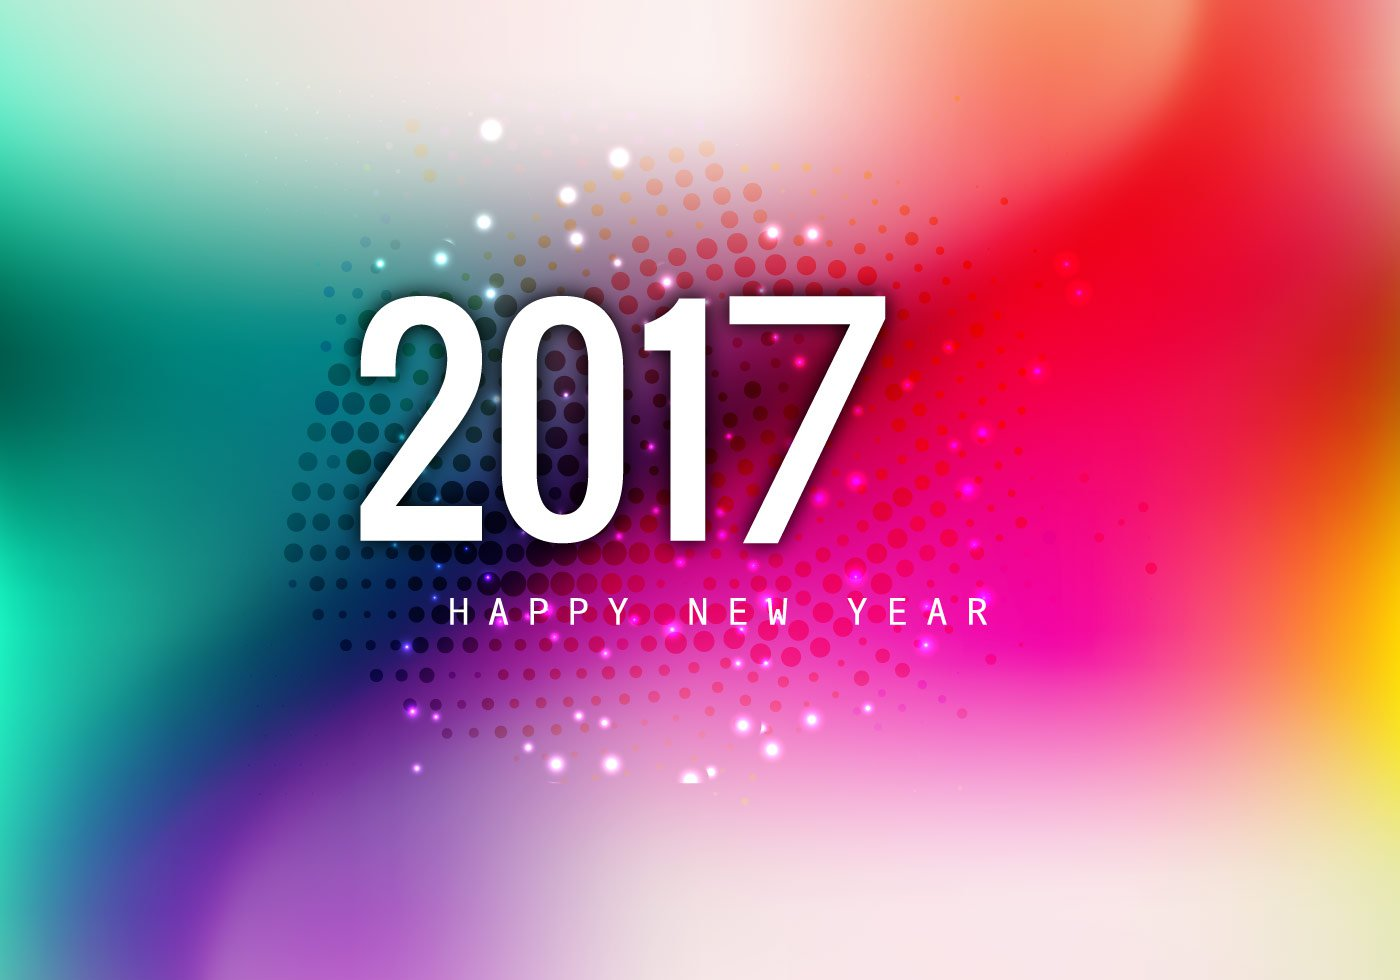 Png High quality 2017 Happy New Year Download